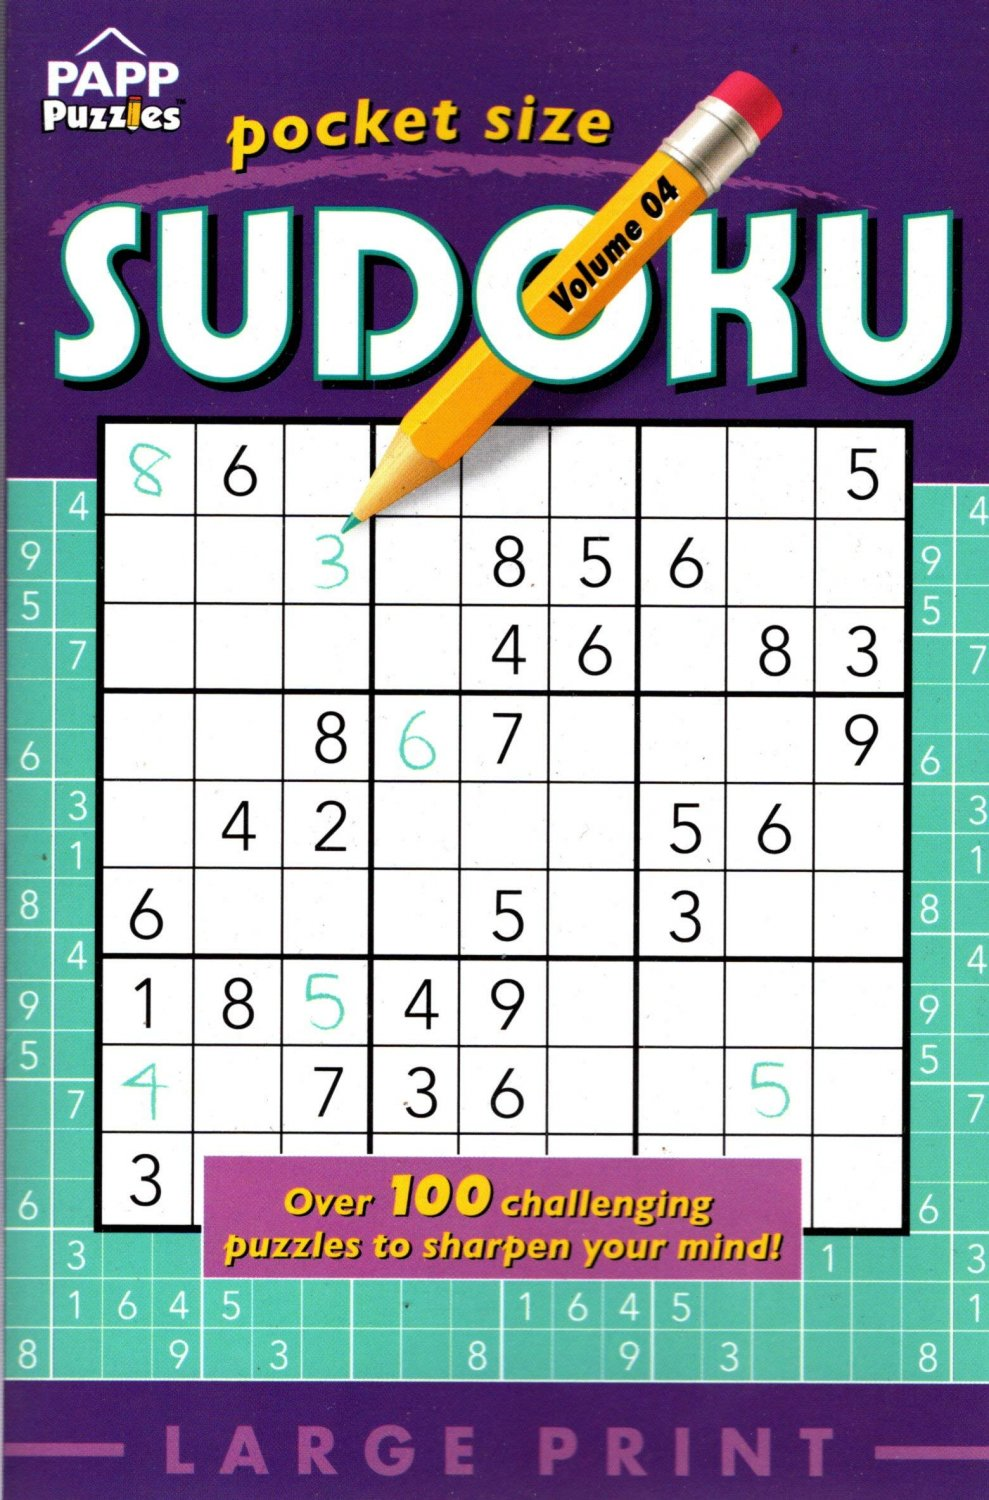 Large Print Pocket Size Sudoku Puzzles - Over 100 Challenging Puzzles to Sharpen Your Mind! - Vol.4